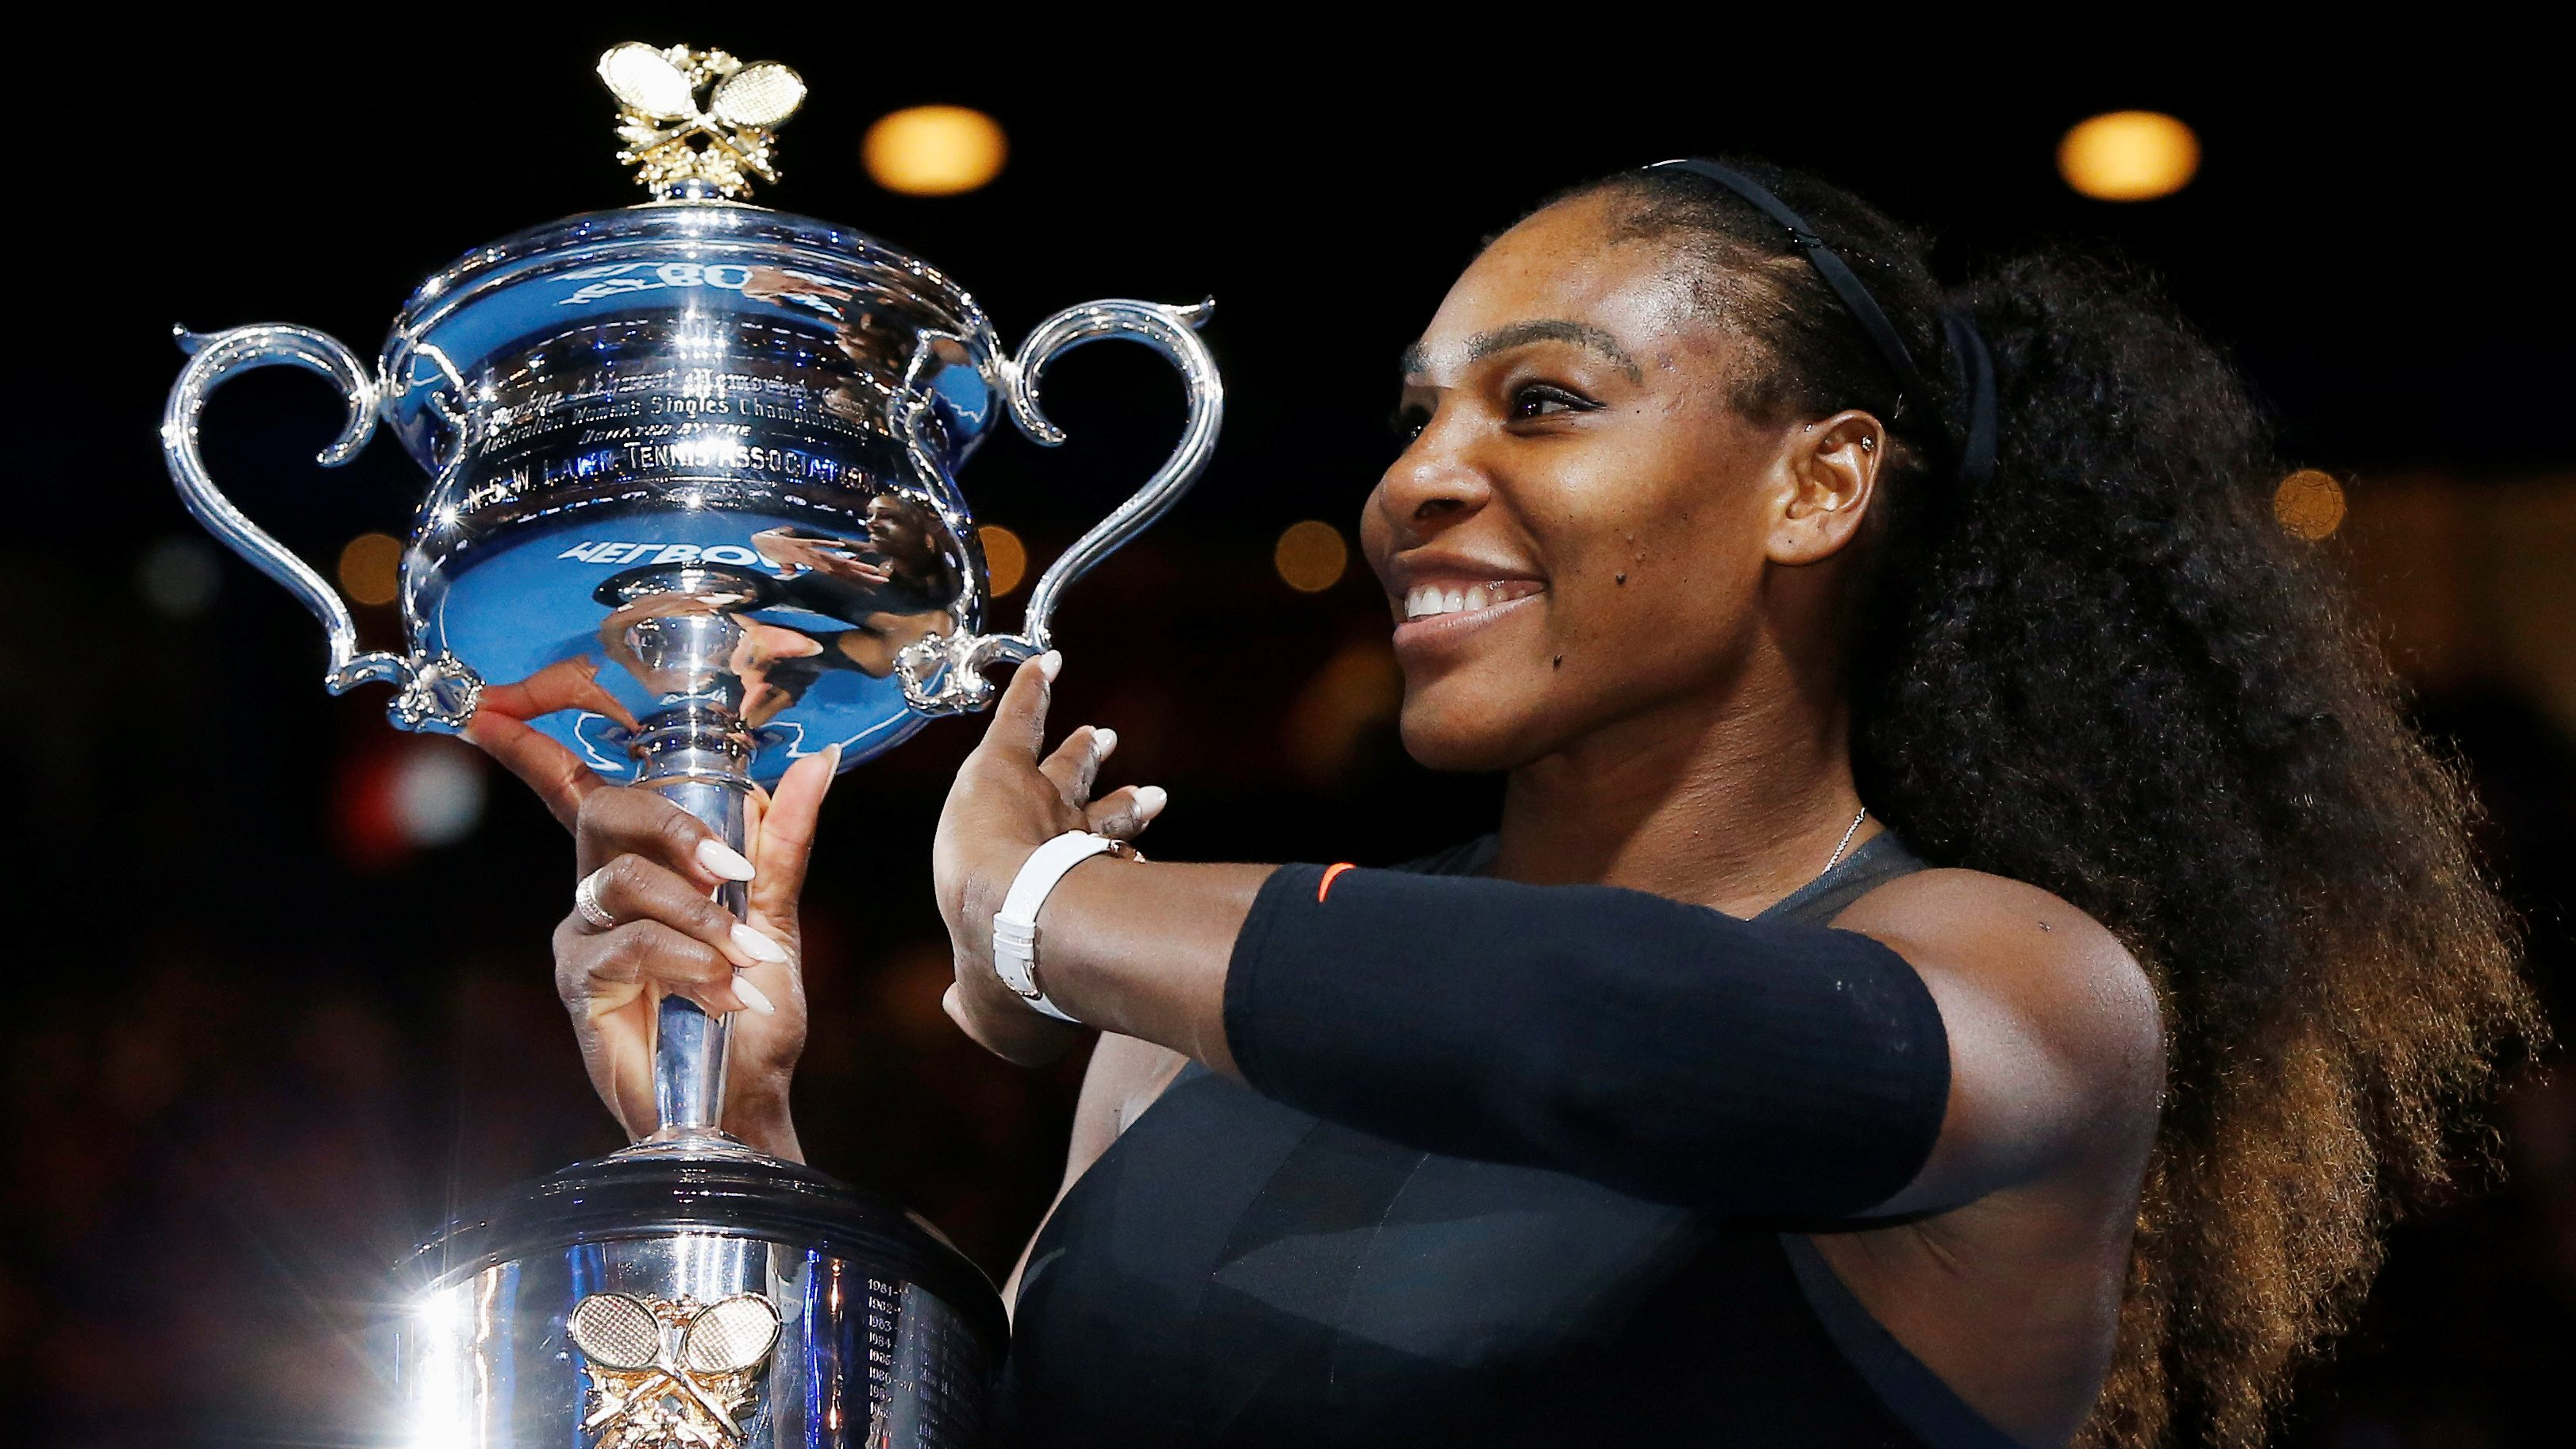 FILE PHOTO: Tennis - Australian Open - Melbourne Park, Melbourne, Australia - 28/1/17 Serena Williams of the U.S. holds her trophy after winning her Women's singles final match against Venus Williams of the U.S. .REUTERS/Issei Kato/File photo - RC1A1FDA3460